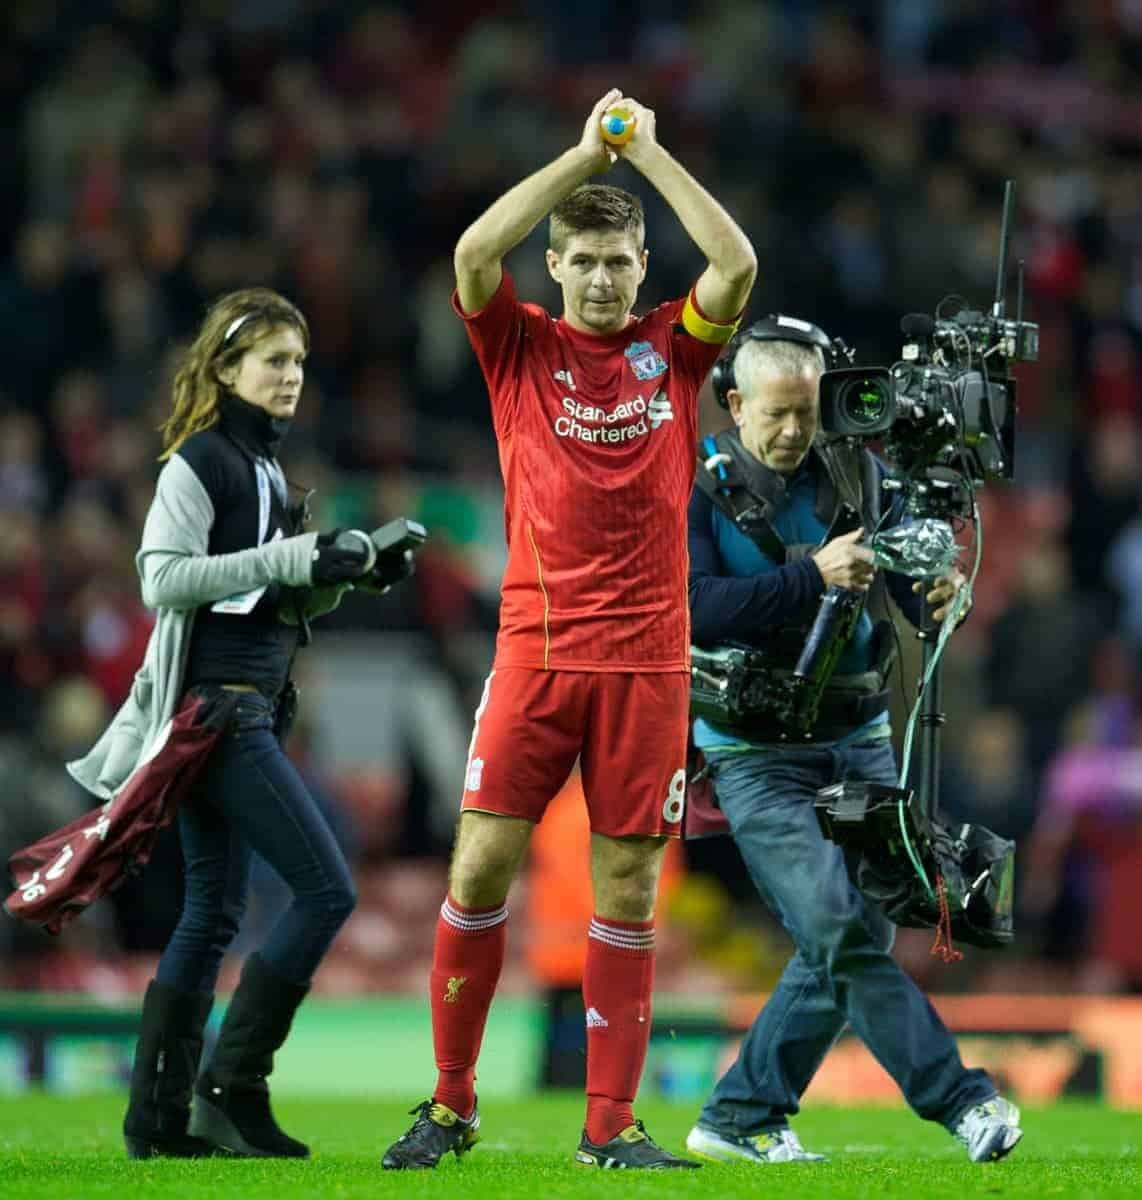 LIVERPOOL, ENGLAND - Thursday, November 4, 2010: Liverpool's hat-trick hero captain Steven Gerrard MBE applauds the supporters after his three goals sealed a 3-1 victory over SSC Napoli during the UEFA Europa League Group K Matchday 4 match at Anfield. (Photo by David Rawcliffe/Propaganda)